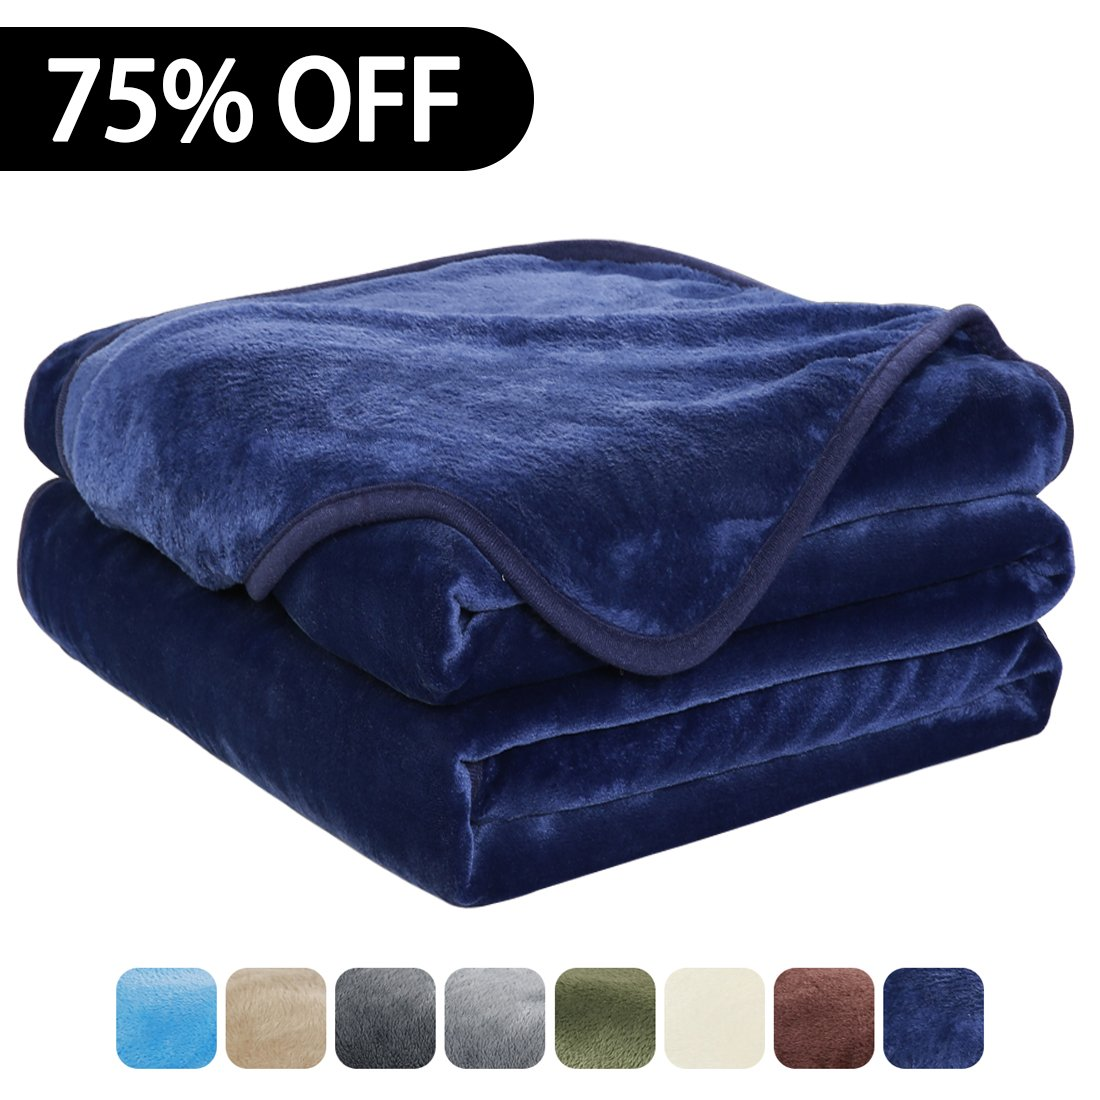 Luxury Fleece Super Soft Thermal Blanket Warm Fuzzy Microplush Lightweight Blankets